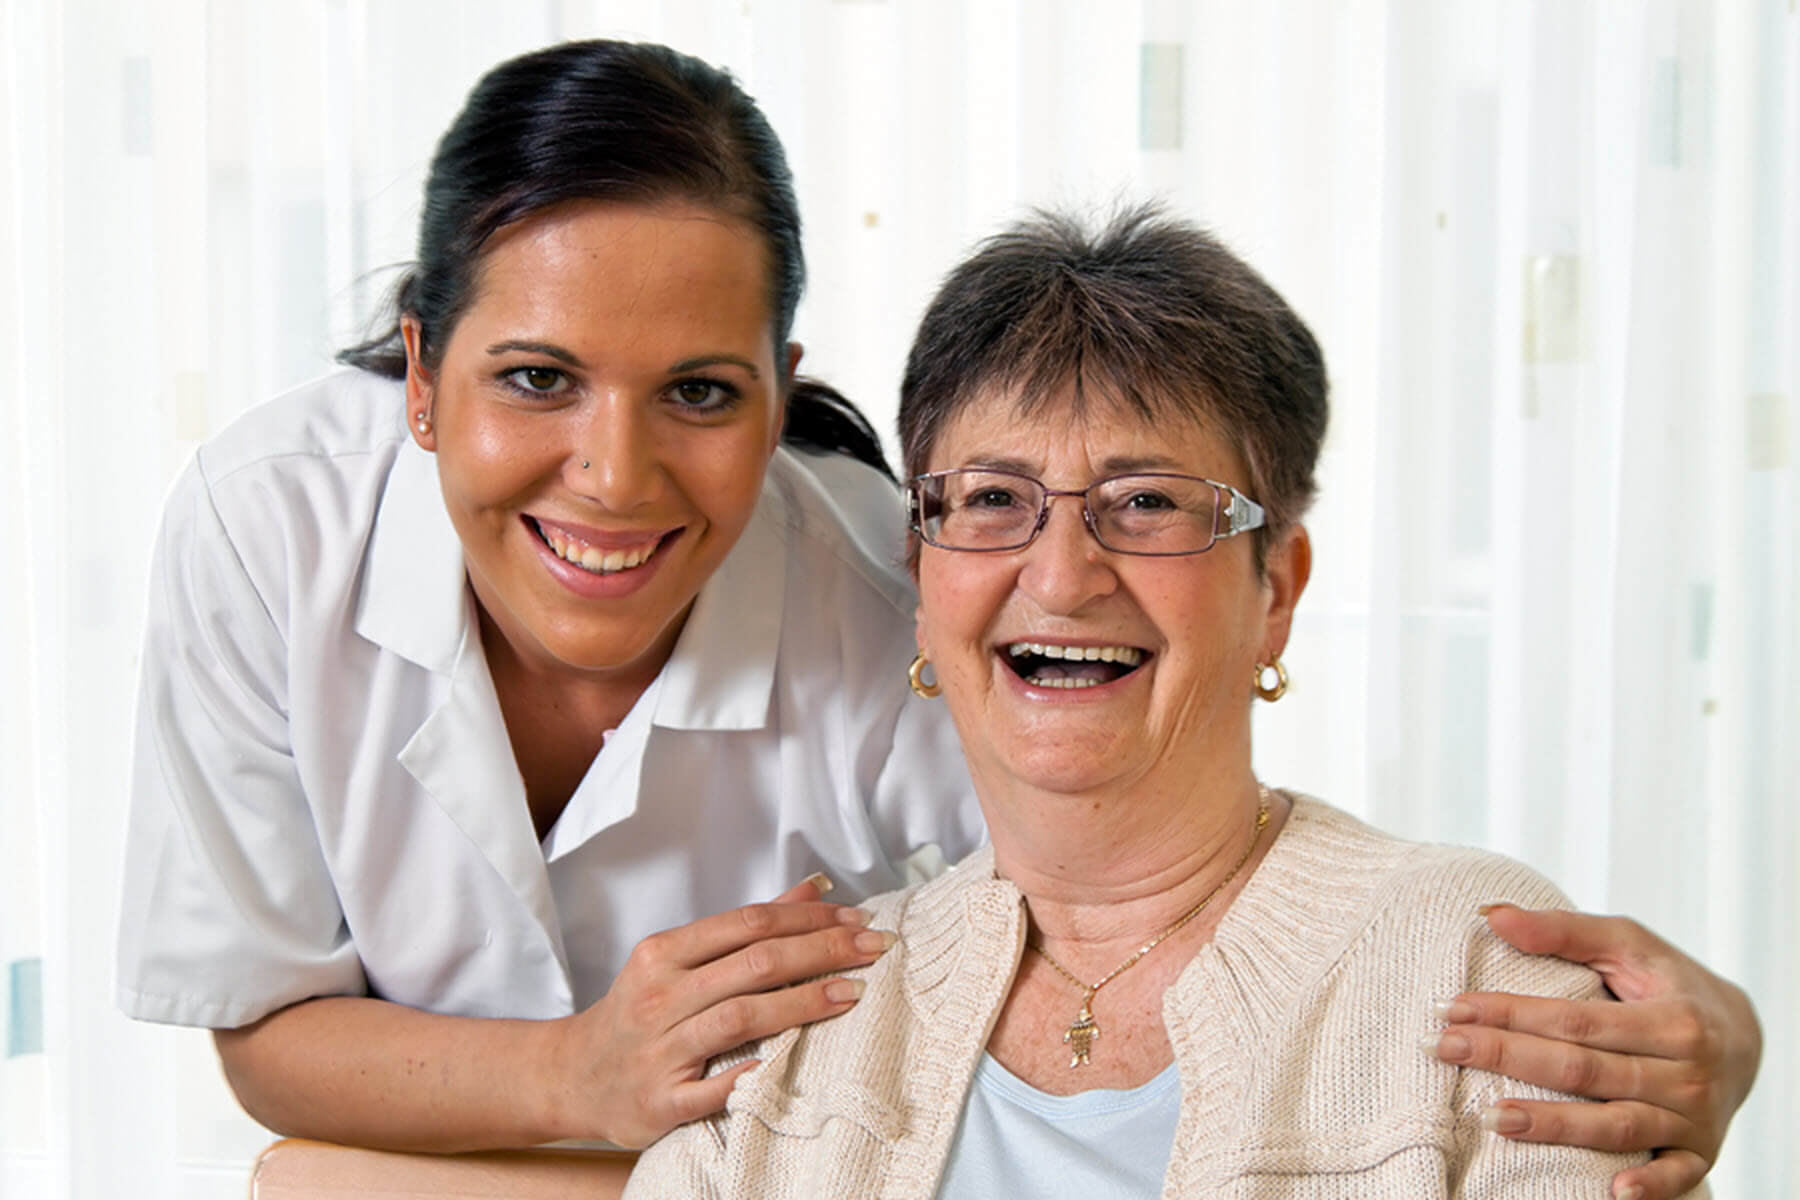 Homecare in Fairhope AL: Make Being a Caregiver Easier